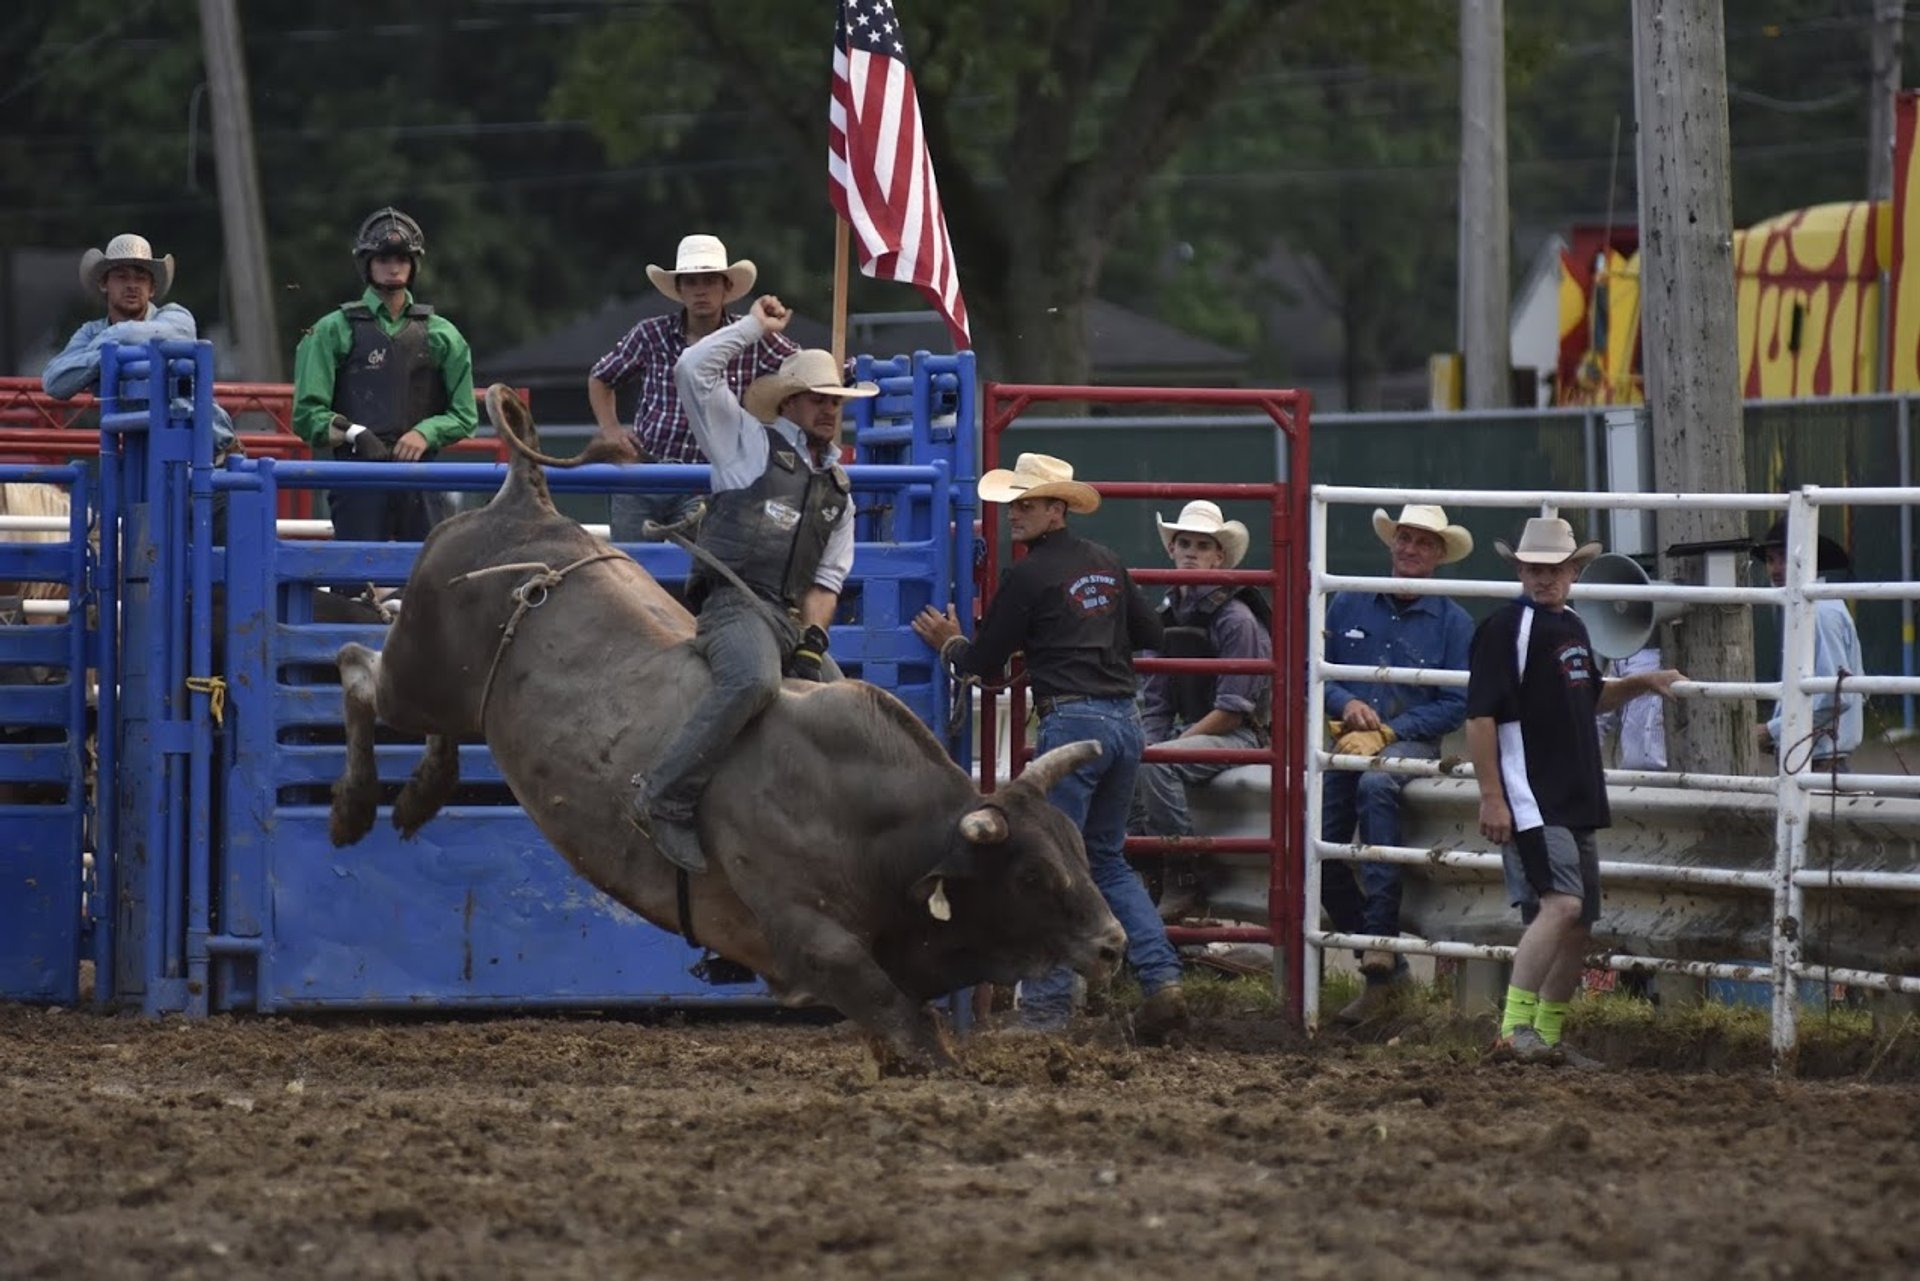 Best time to see Cuyahoga County Fair 2020